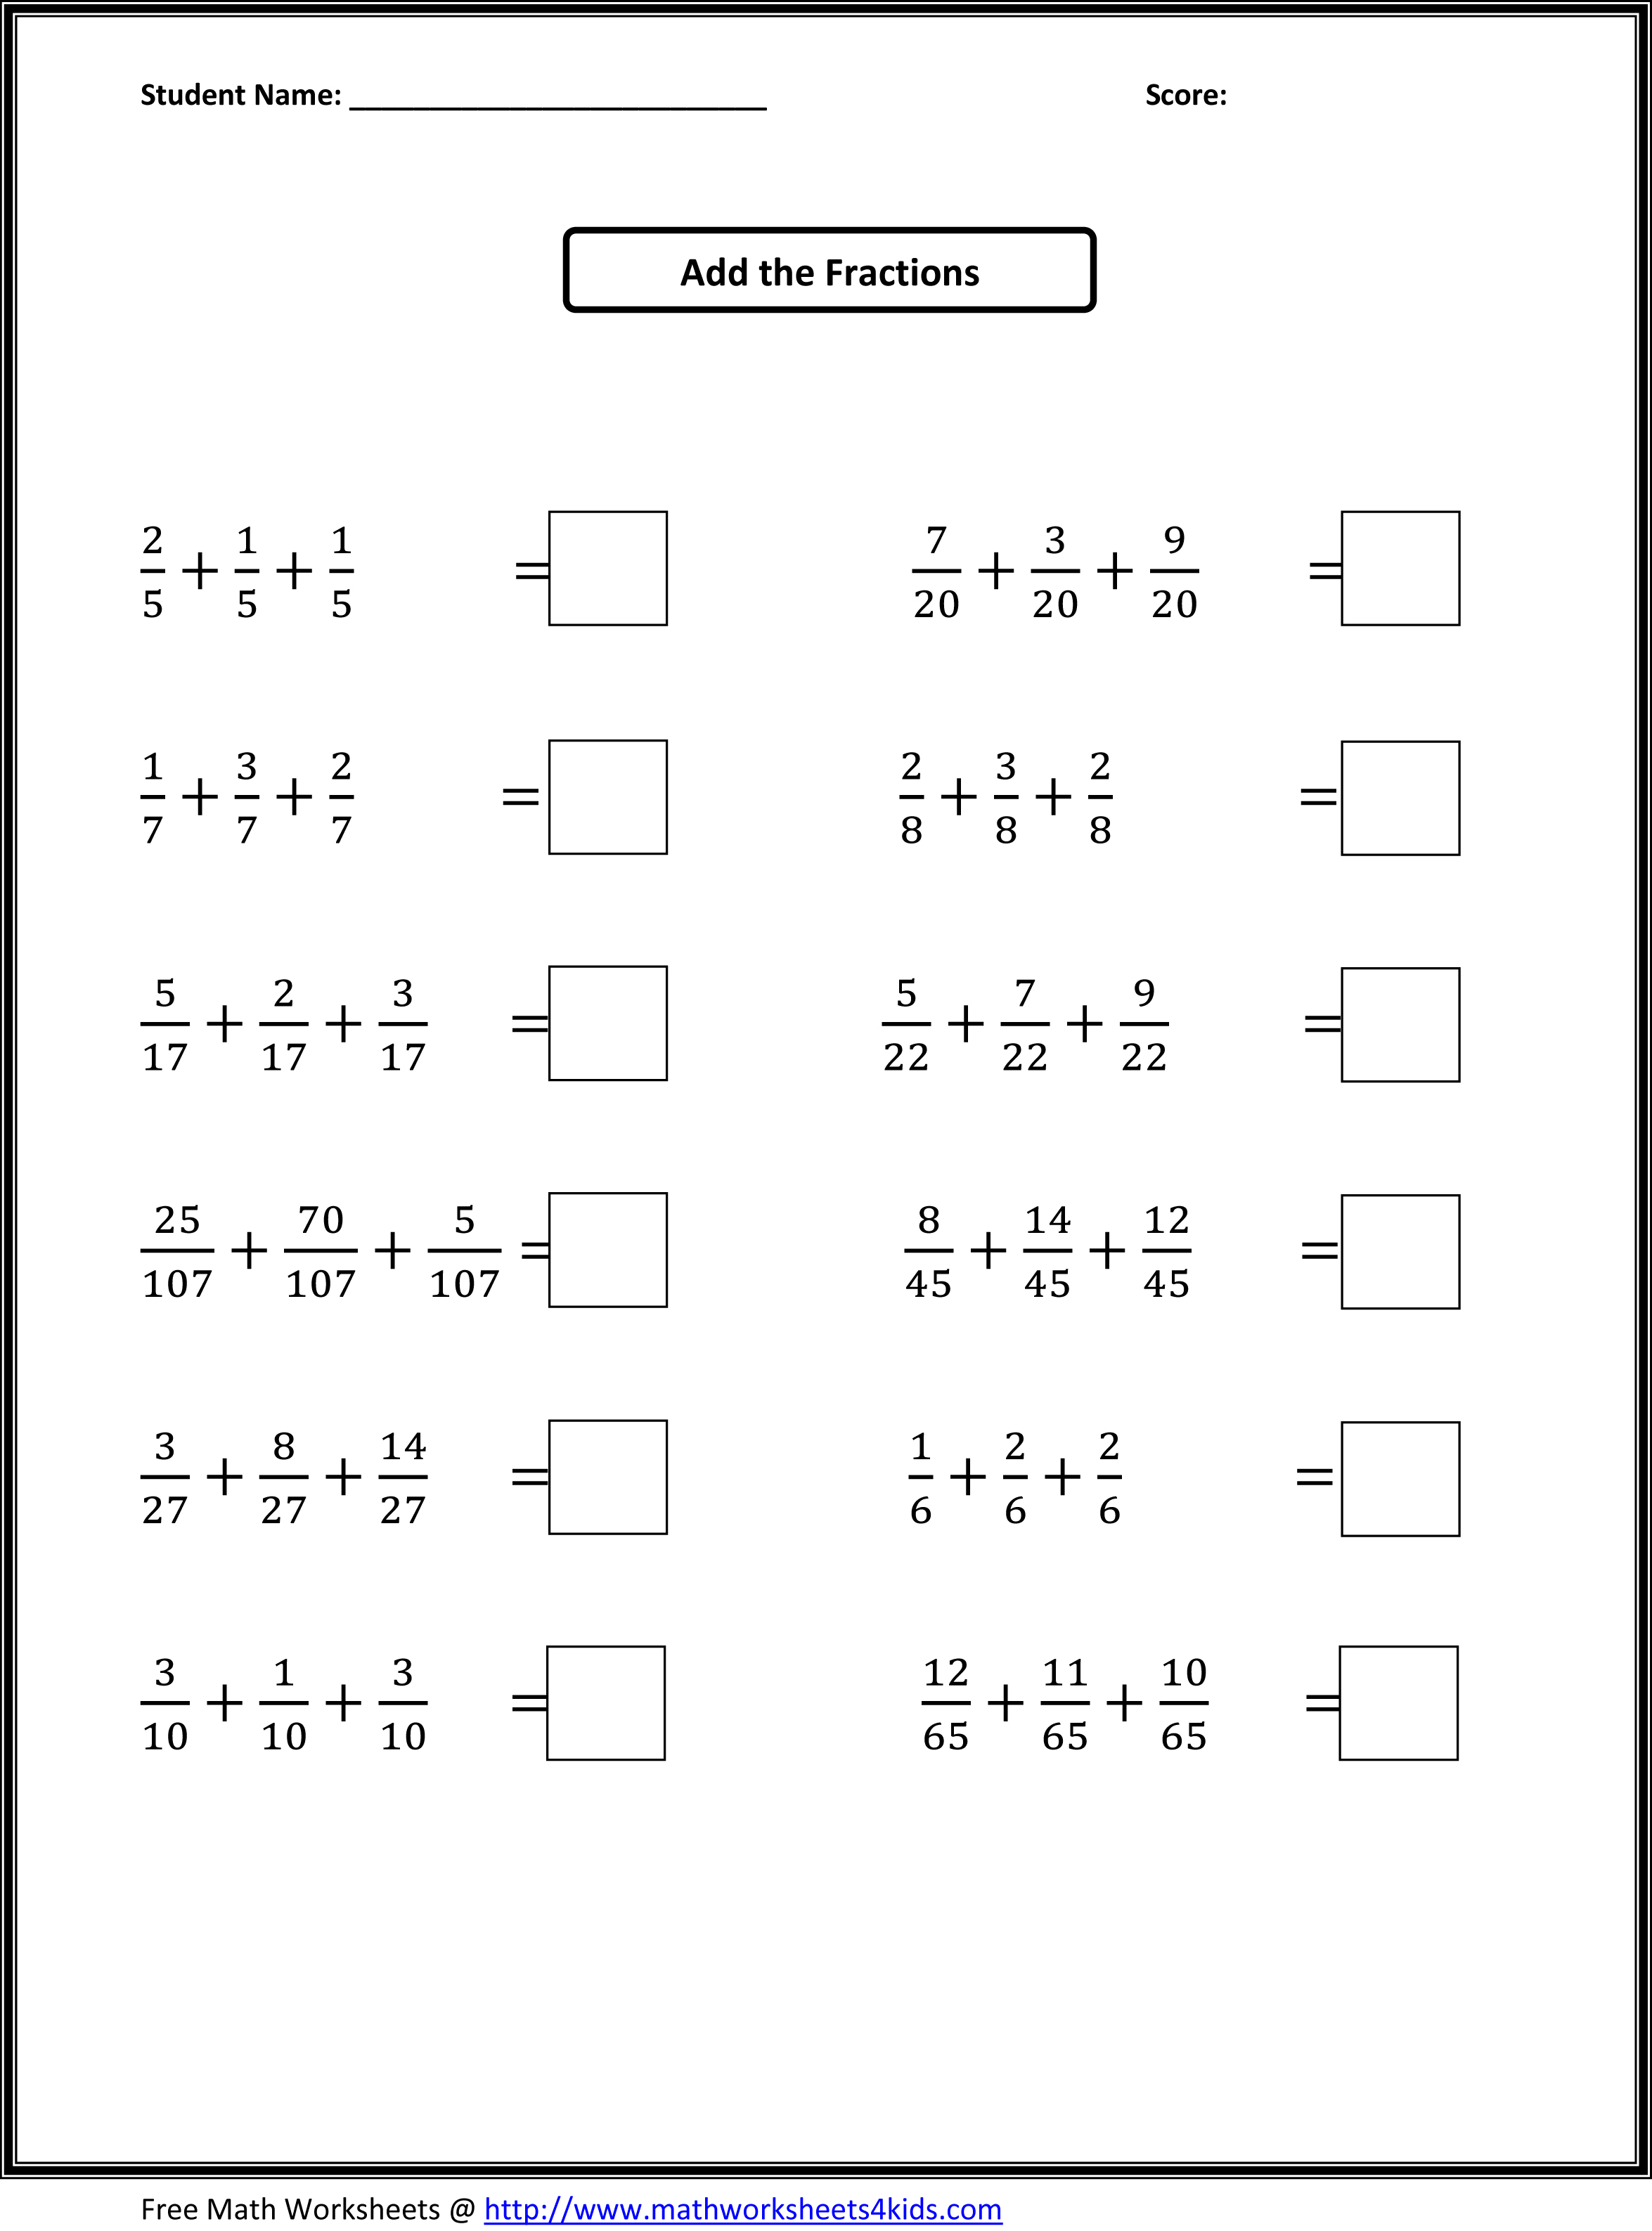 23 Sample Adding Fractions Worksheet Templates